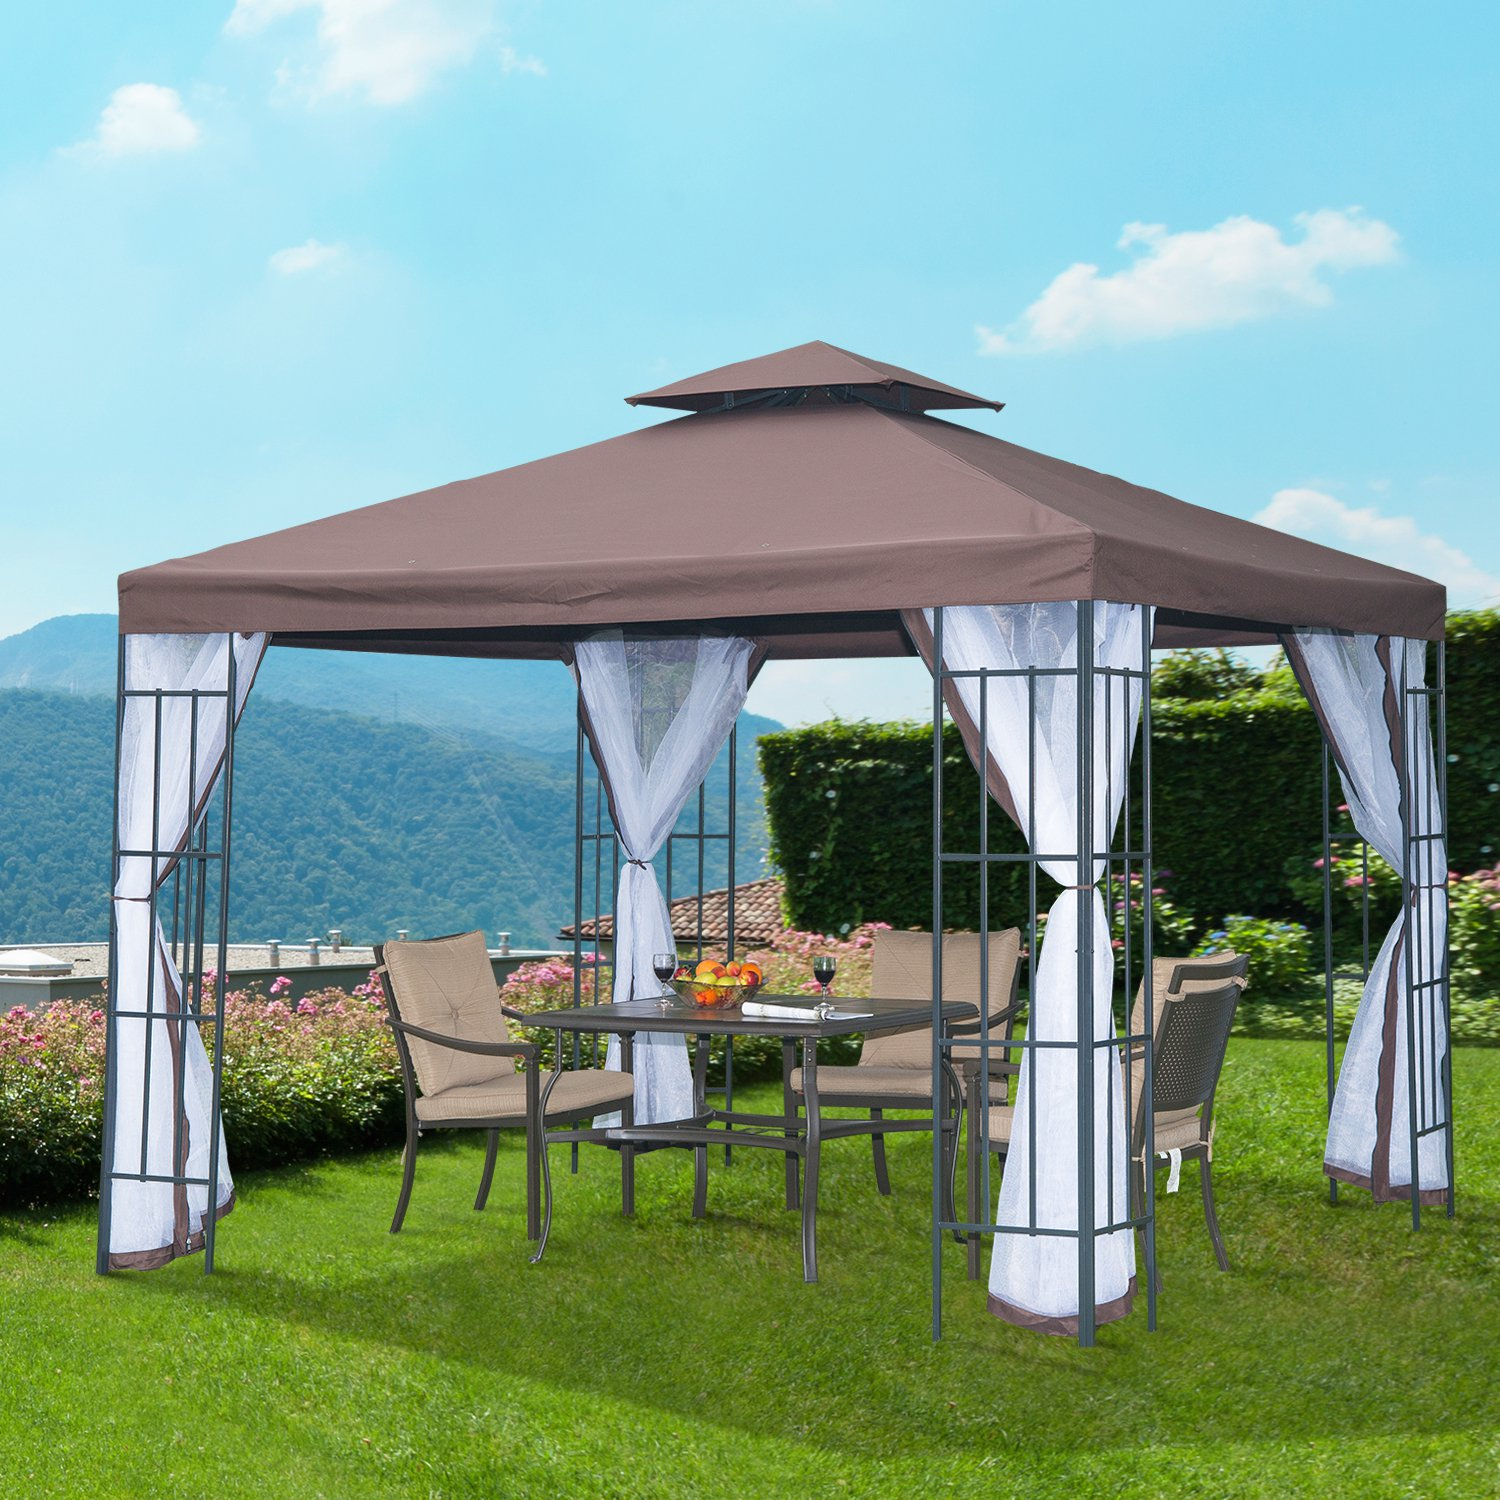 Outsunny 3m x 3m Gazebo Marquee Metal Party Tent Canopy Pavillion Patio Garden Shelter Steel Frame with mesh sidewall and Water strip Coffee 01 0153